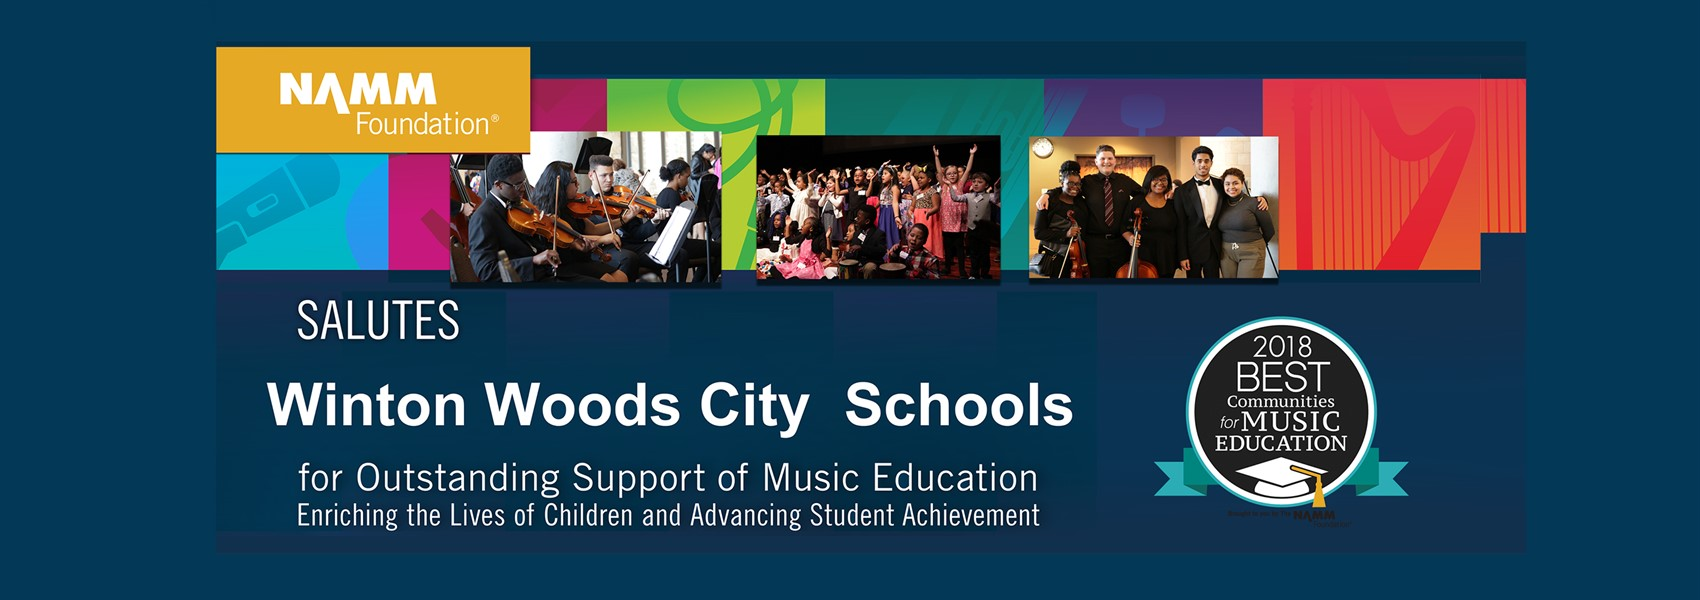 WWCS was designated as one of the best communities for music education for 2018